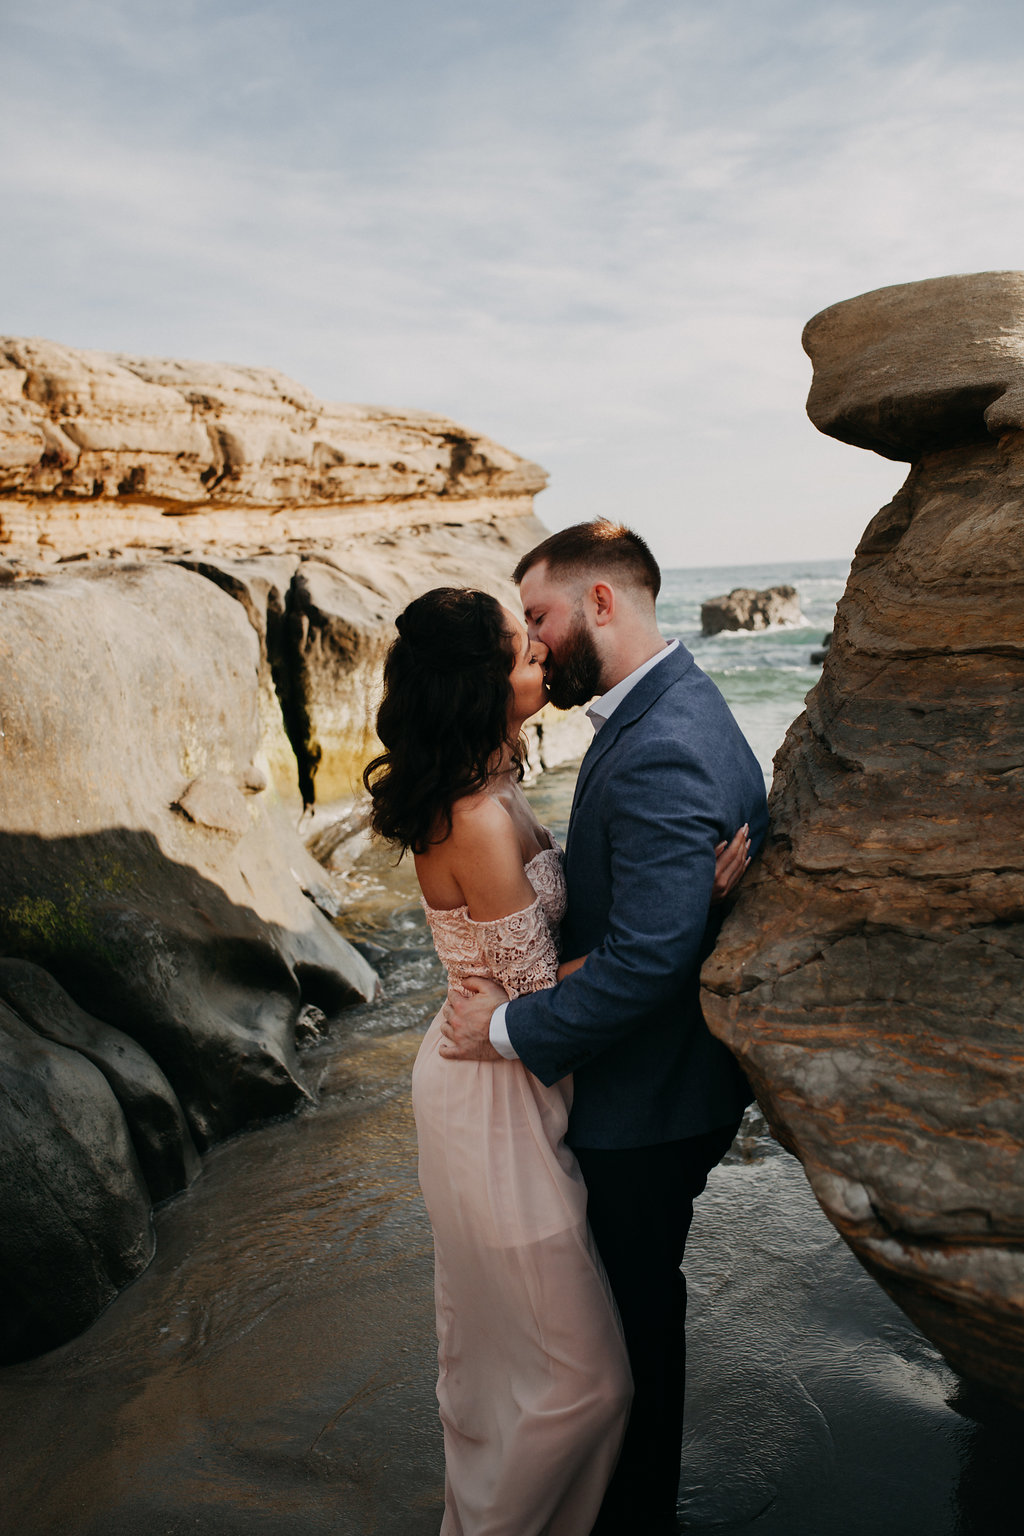 pinkfeatherphotography-Lajollabeach-engagement(38of146).jpg